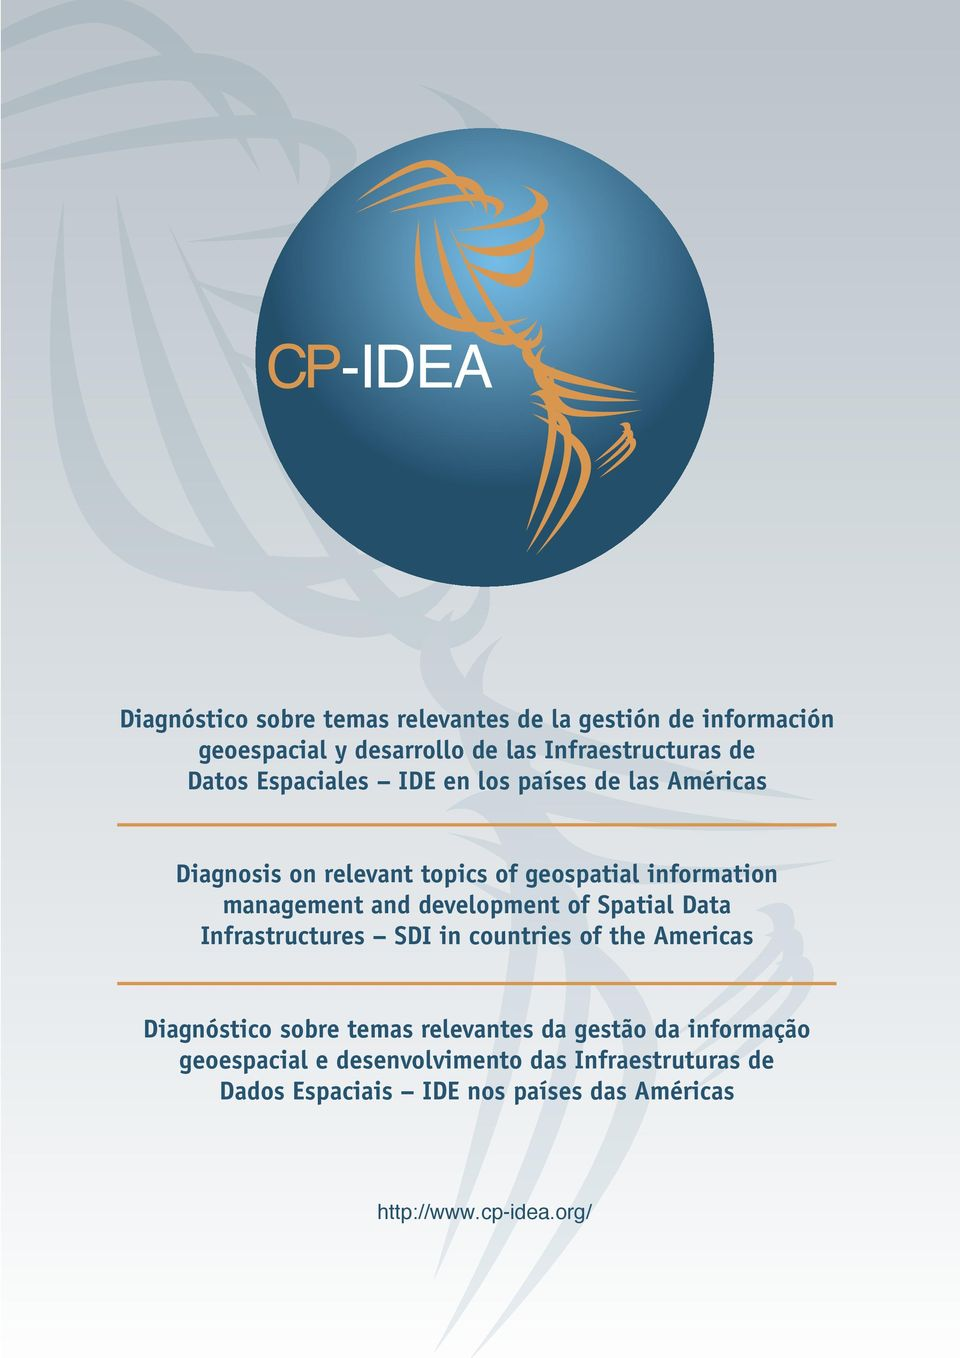 development of Spatial Data Infrastructures SDI in countries of the Americas Diagnóstico sobre temas relevantes da gestão